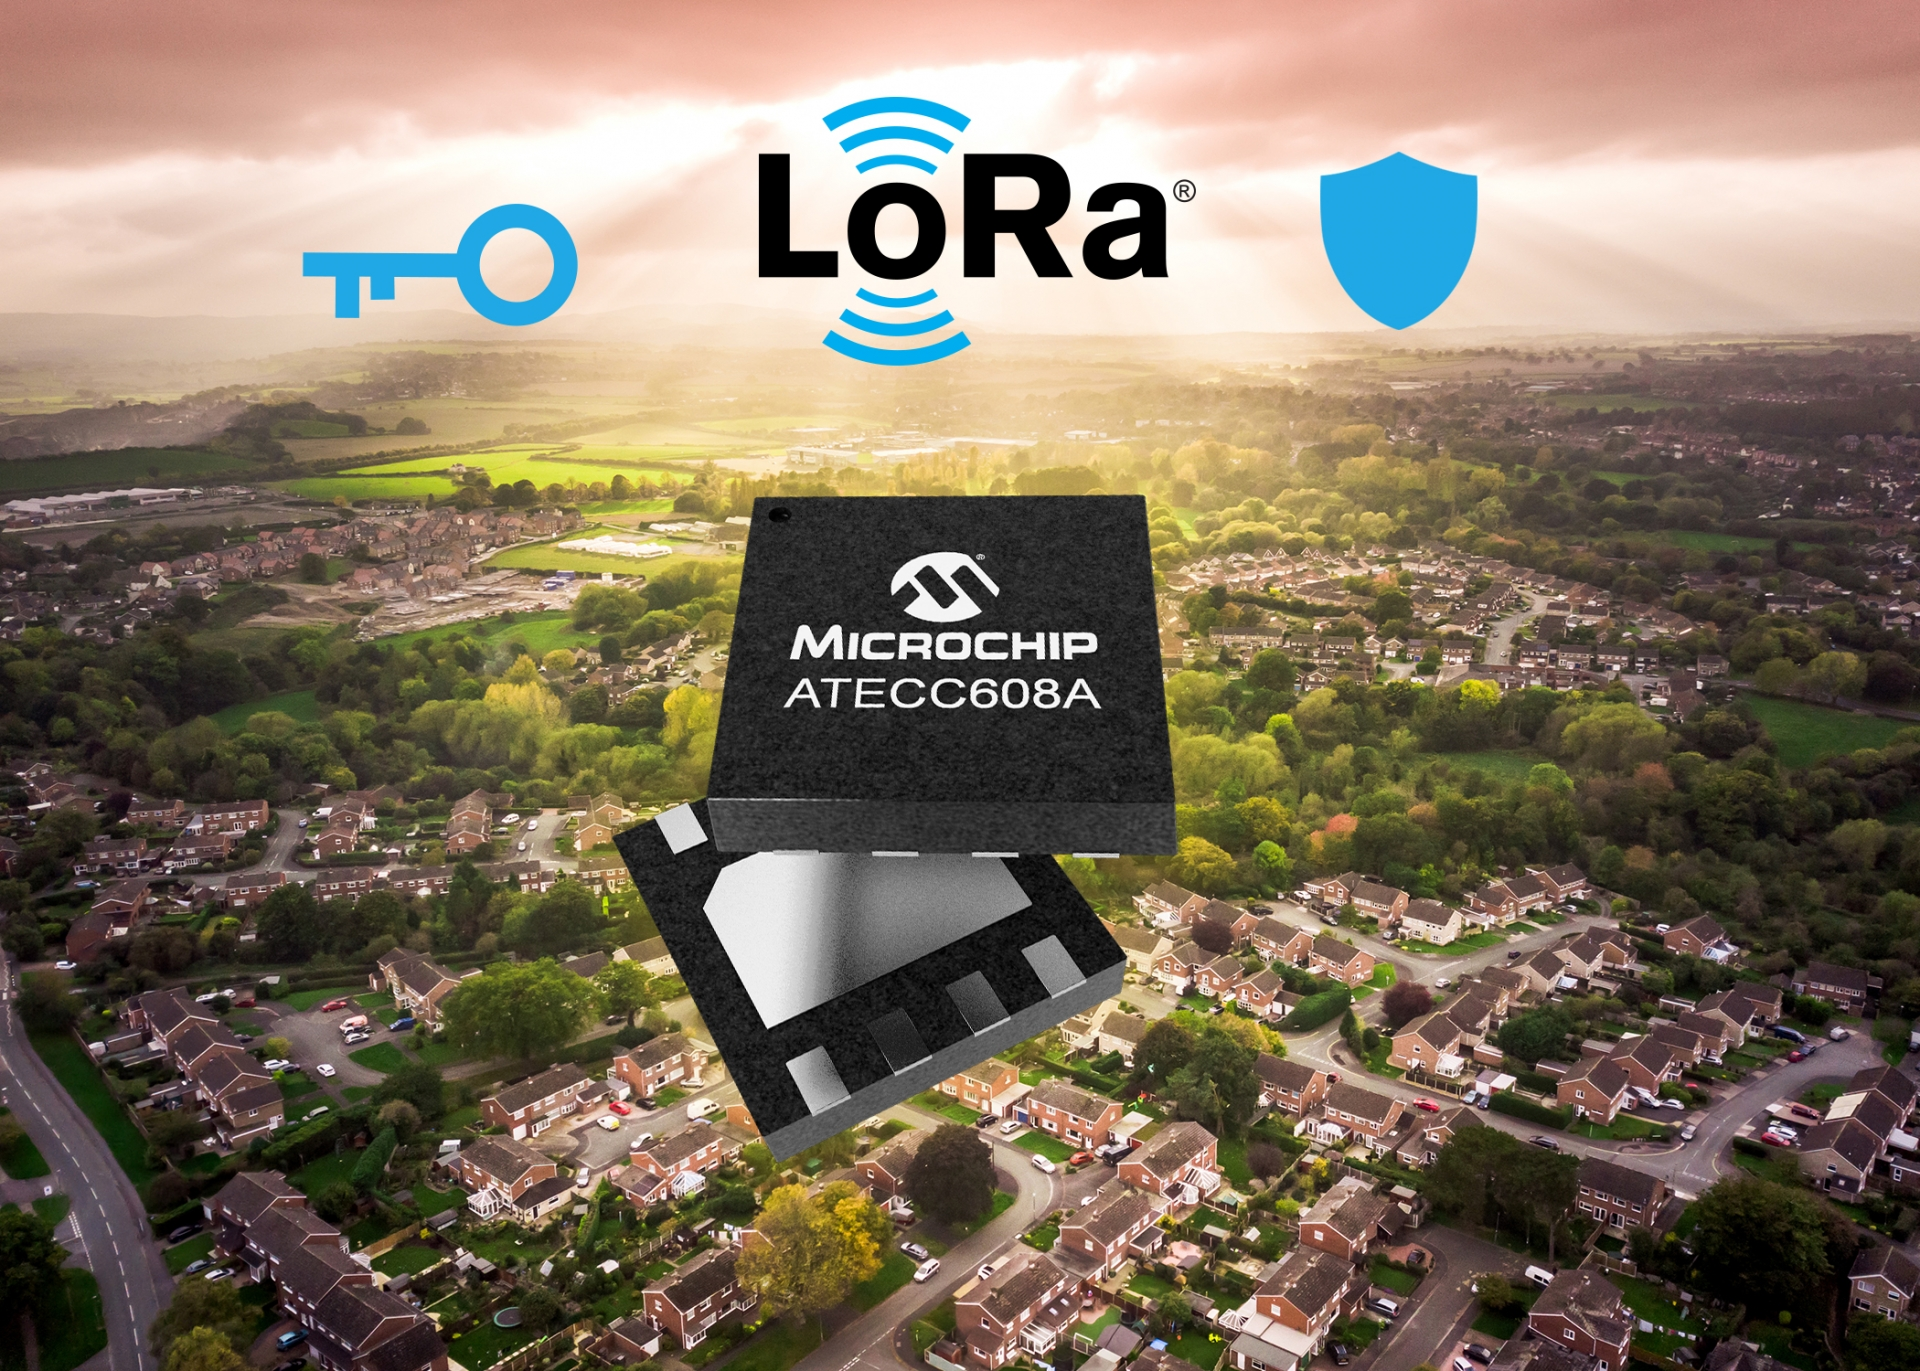 Industry-first end-to-end LoRa solution offers secure key provisioning